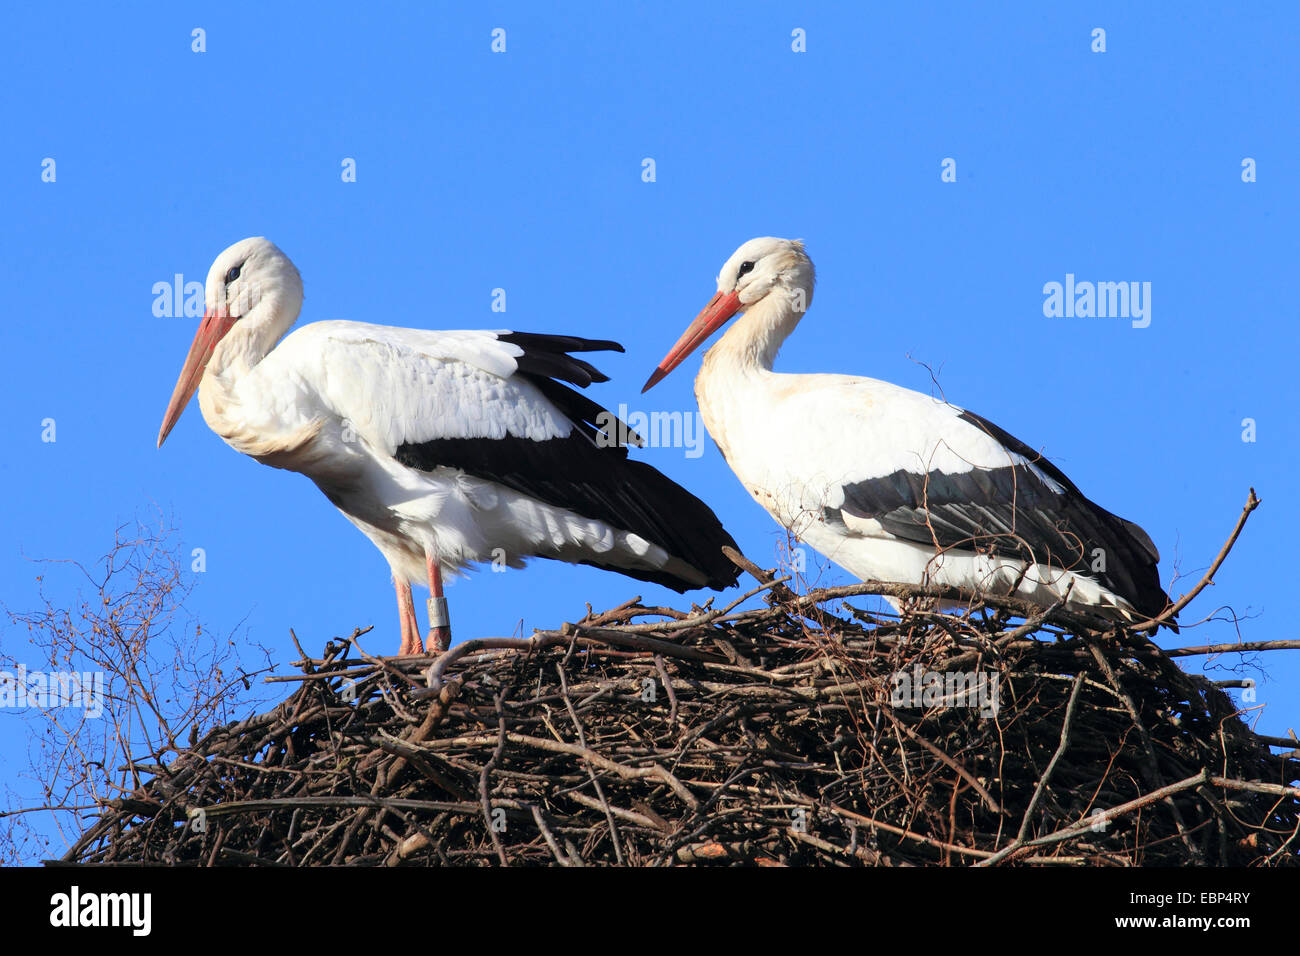 white stork (Ciconia ciconia), two white storks at the nest, Germany - Stock Image